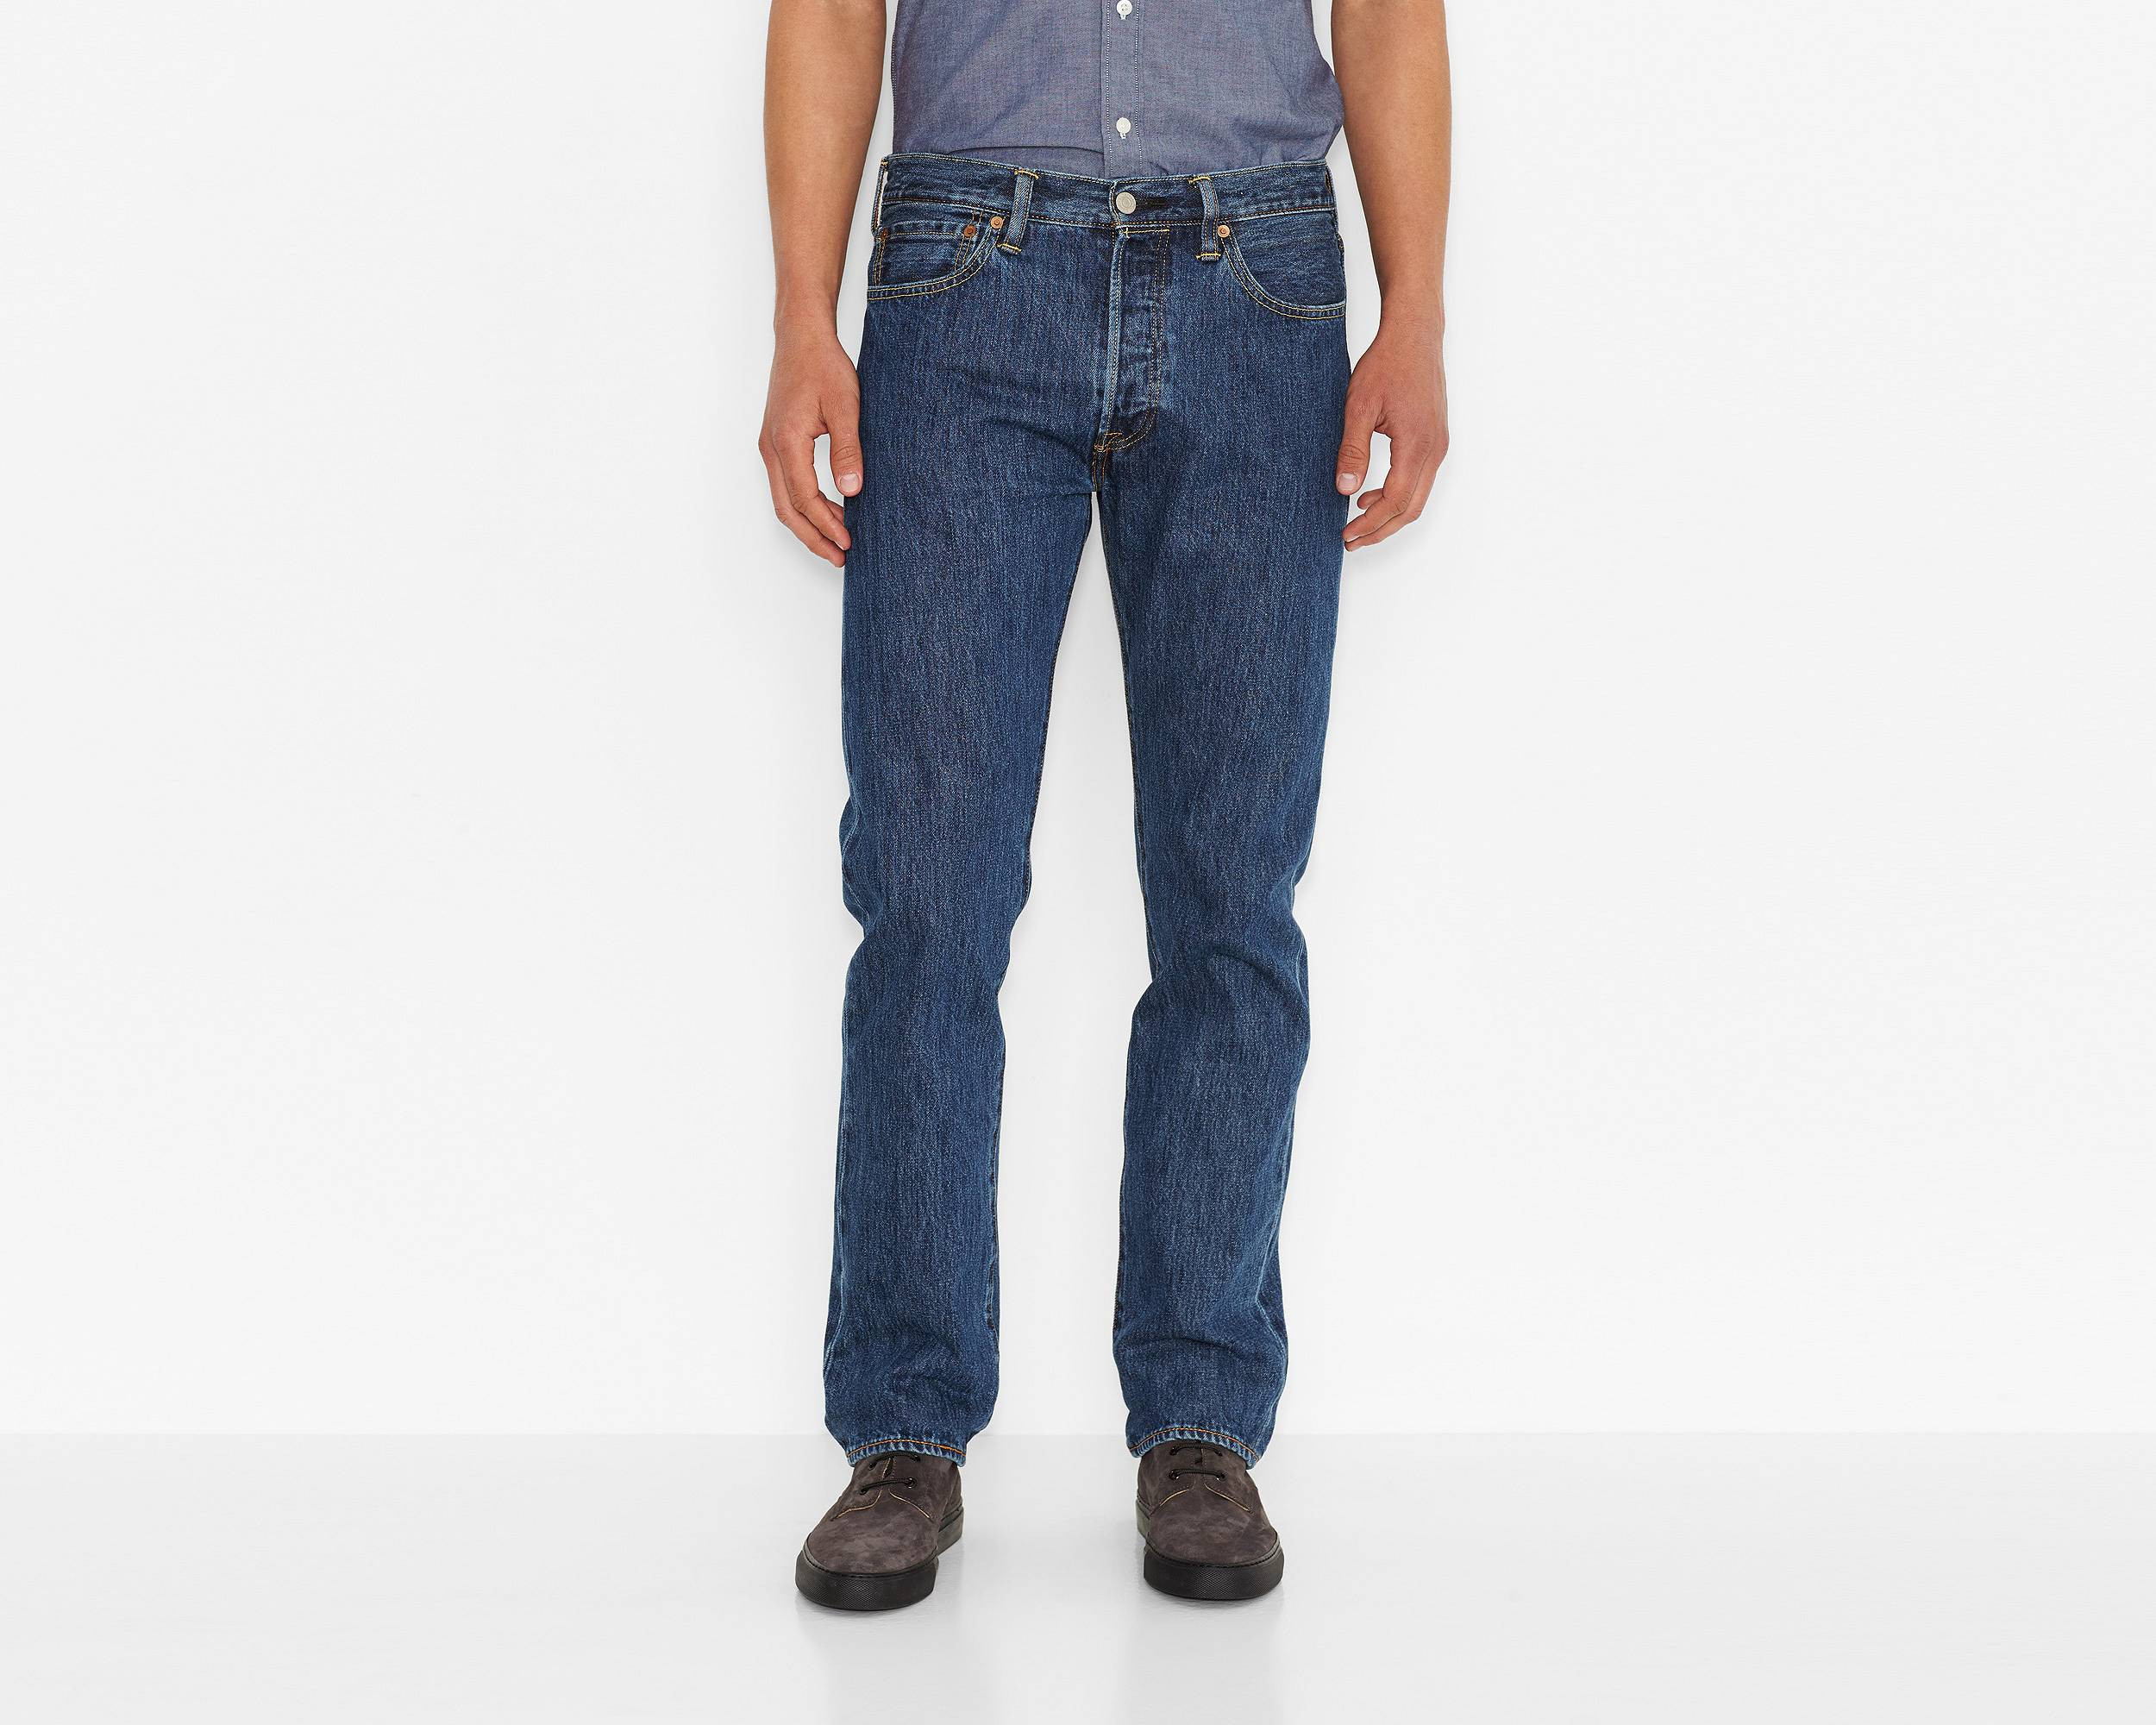 Levi Jeans For Tall Women